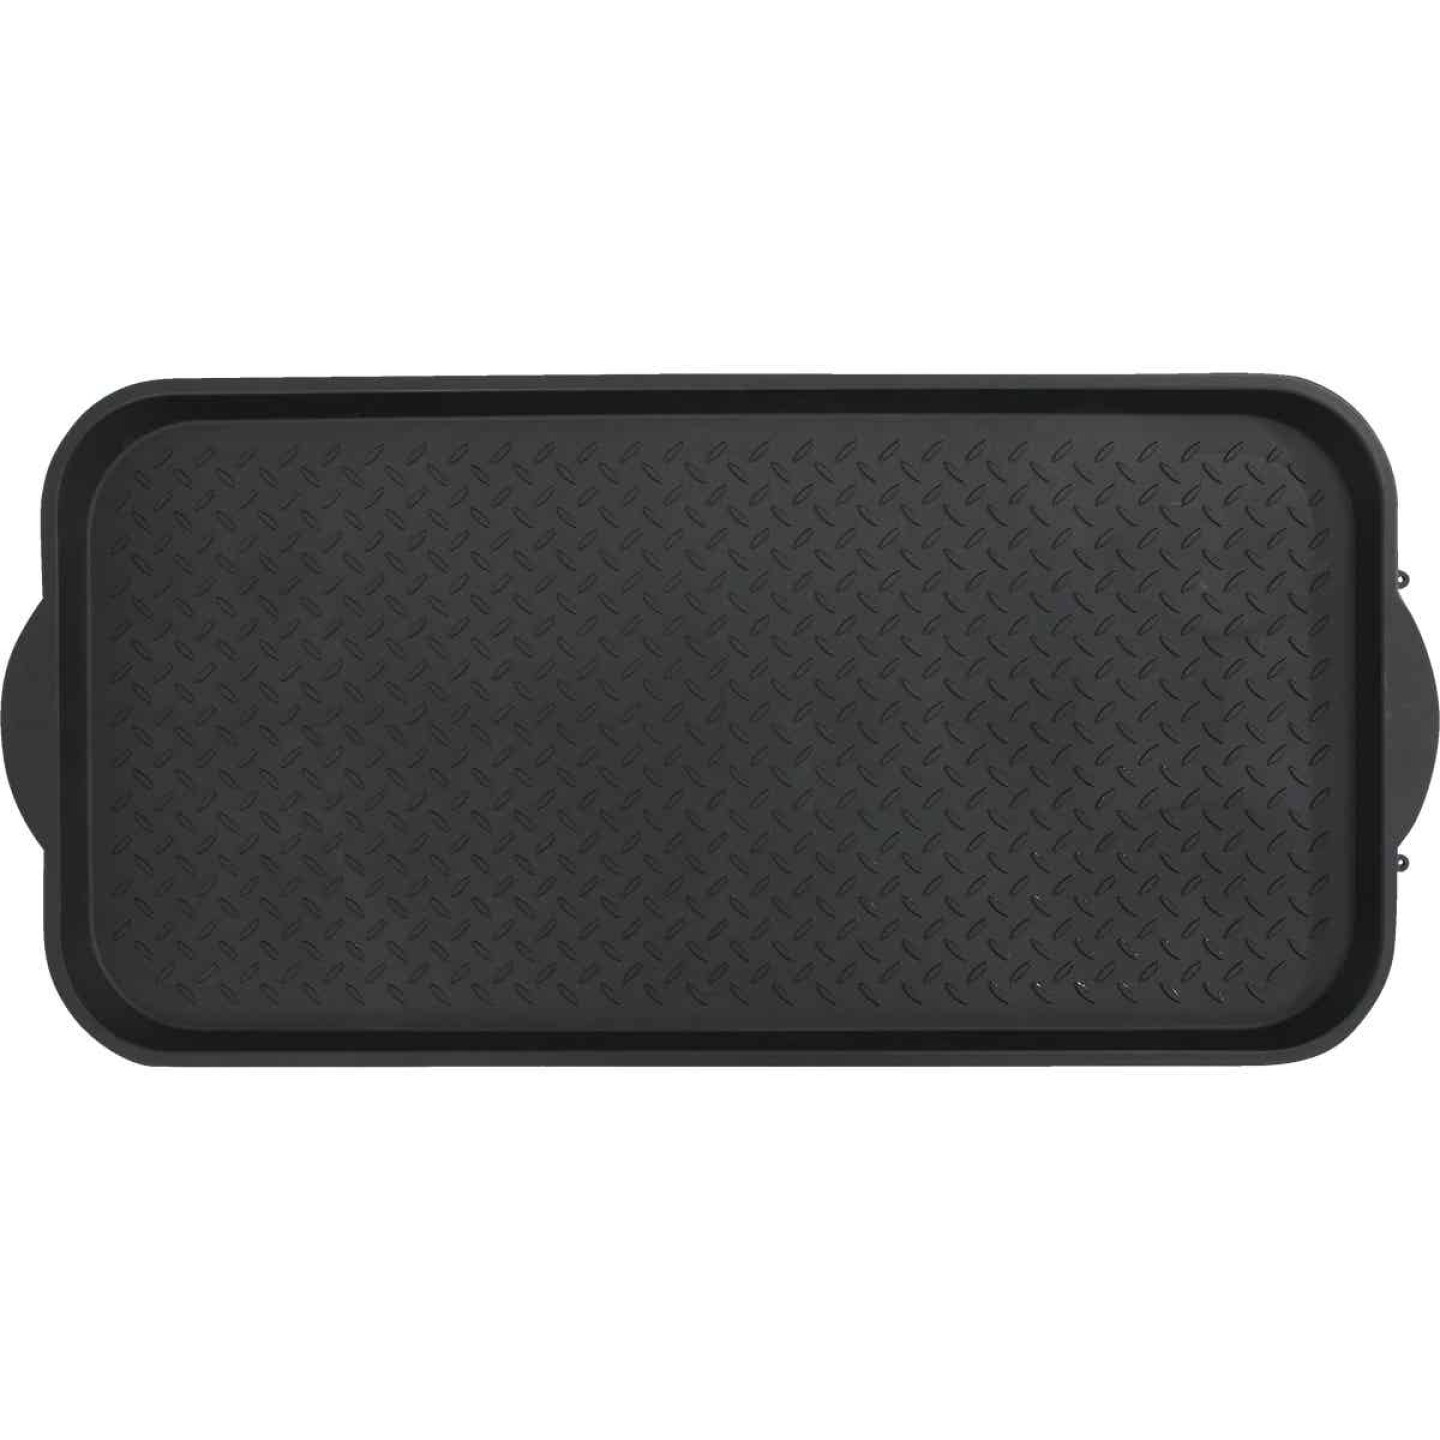 XL 18.9 In. x 39.3 In. Black Recycled Plastic Boot Tray Image 4